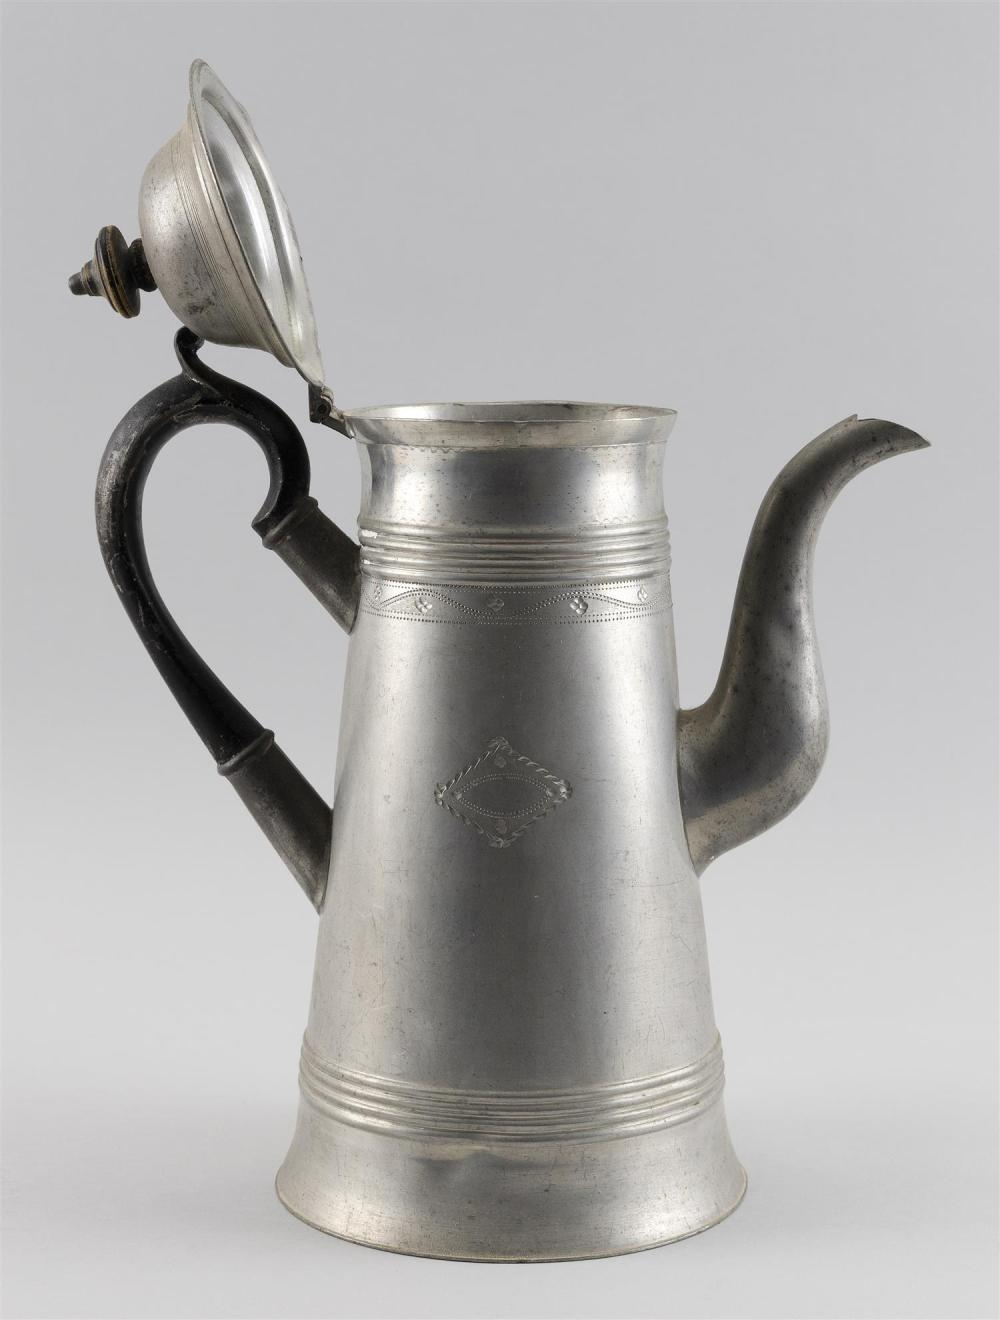 PEWTER LIGHTHOUSE COFFEEPOT BY ISRAEL TRASK Applied wooden handle. Some engraving on body. Straight line touchmark. Height 12